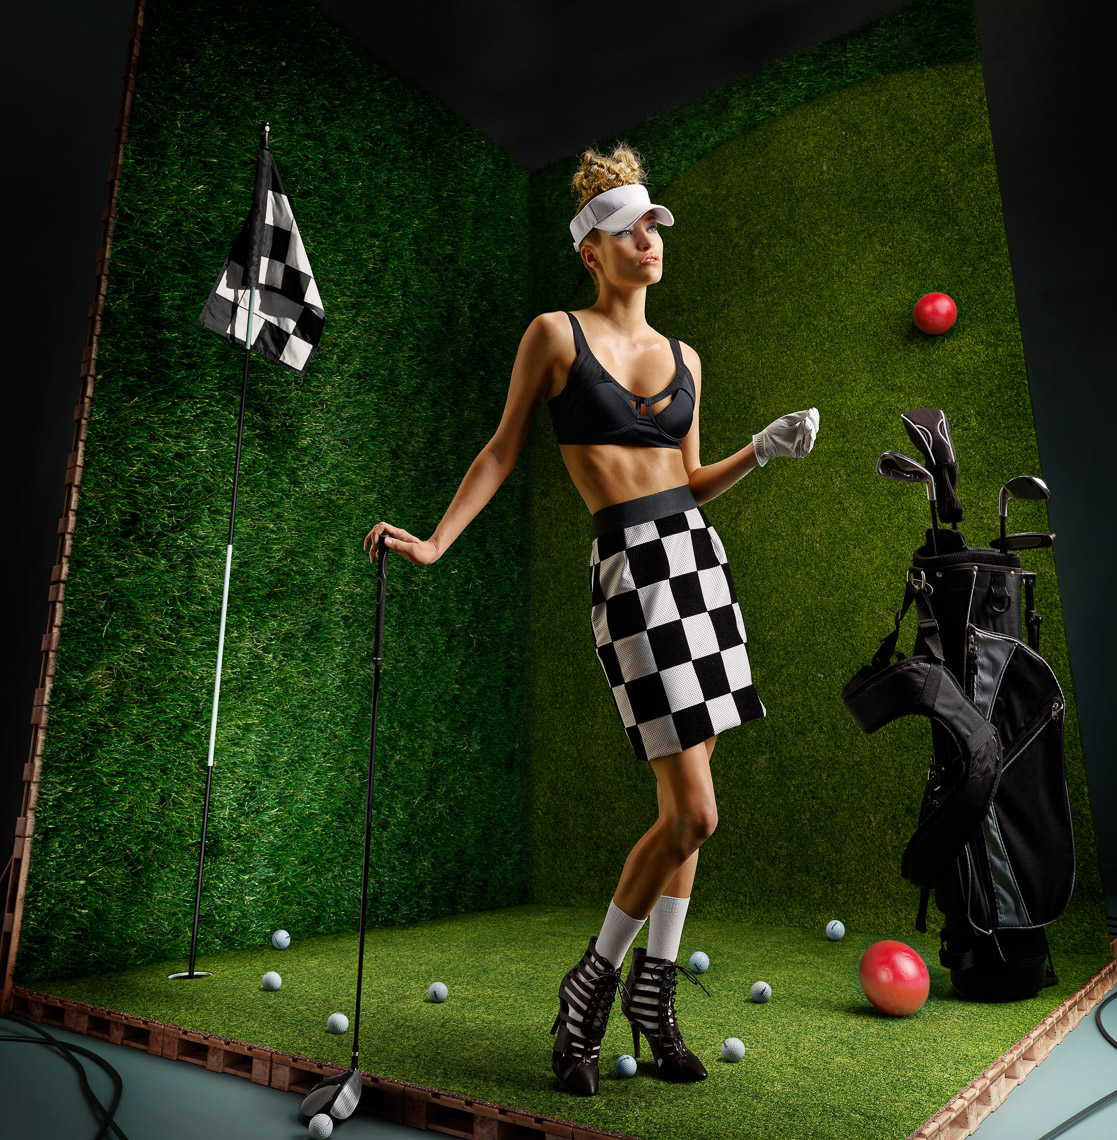 Fashion_Golf_v12cL